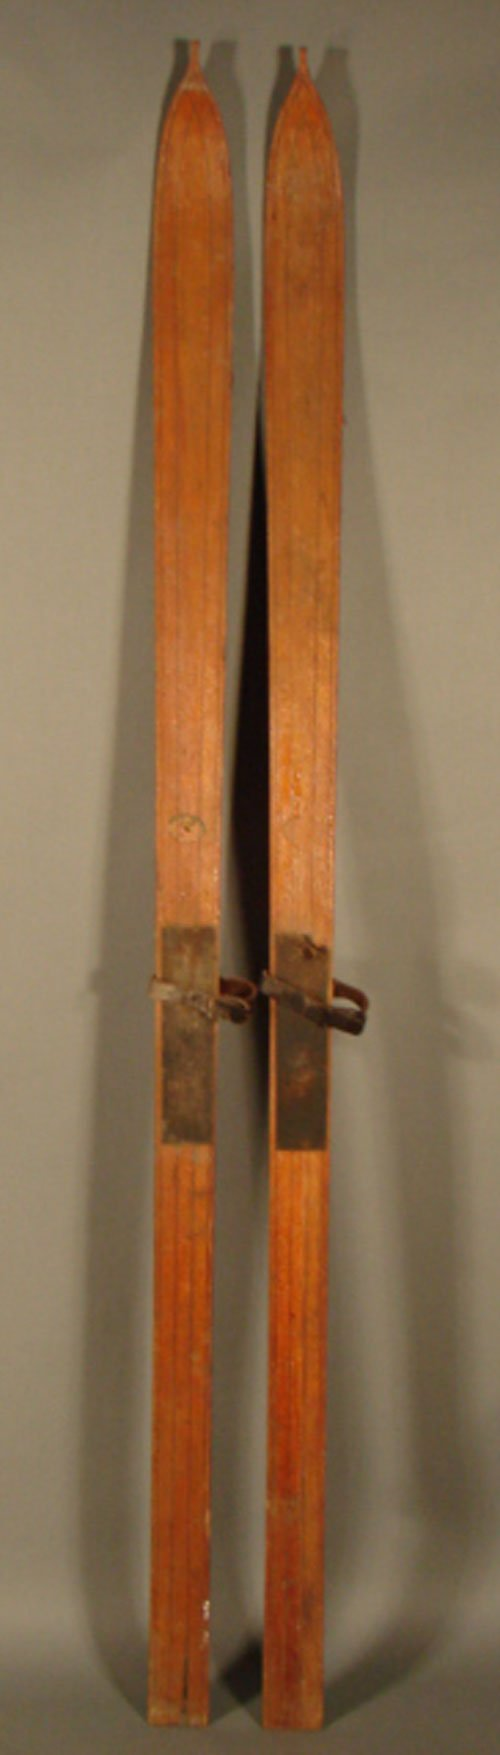 """11017: Wooden skis with leather straps. Partial label """""""